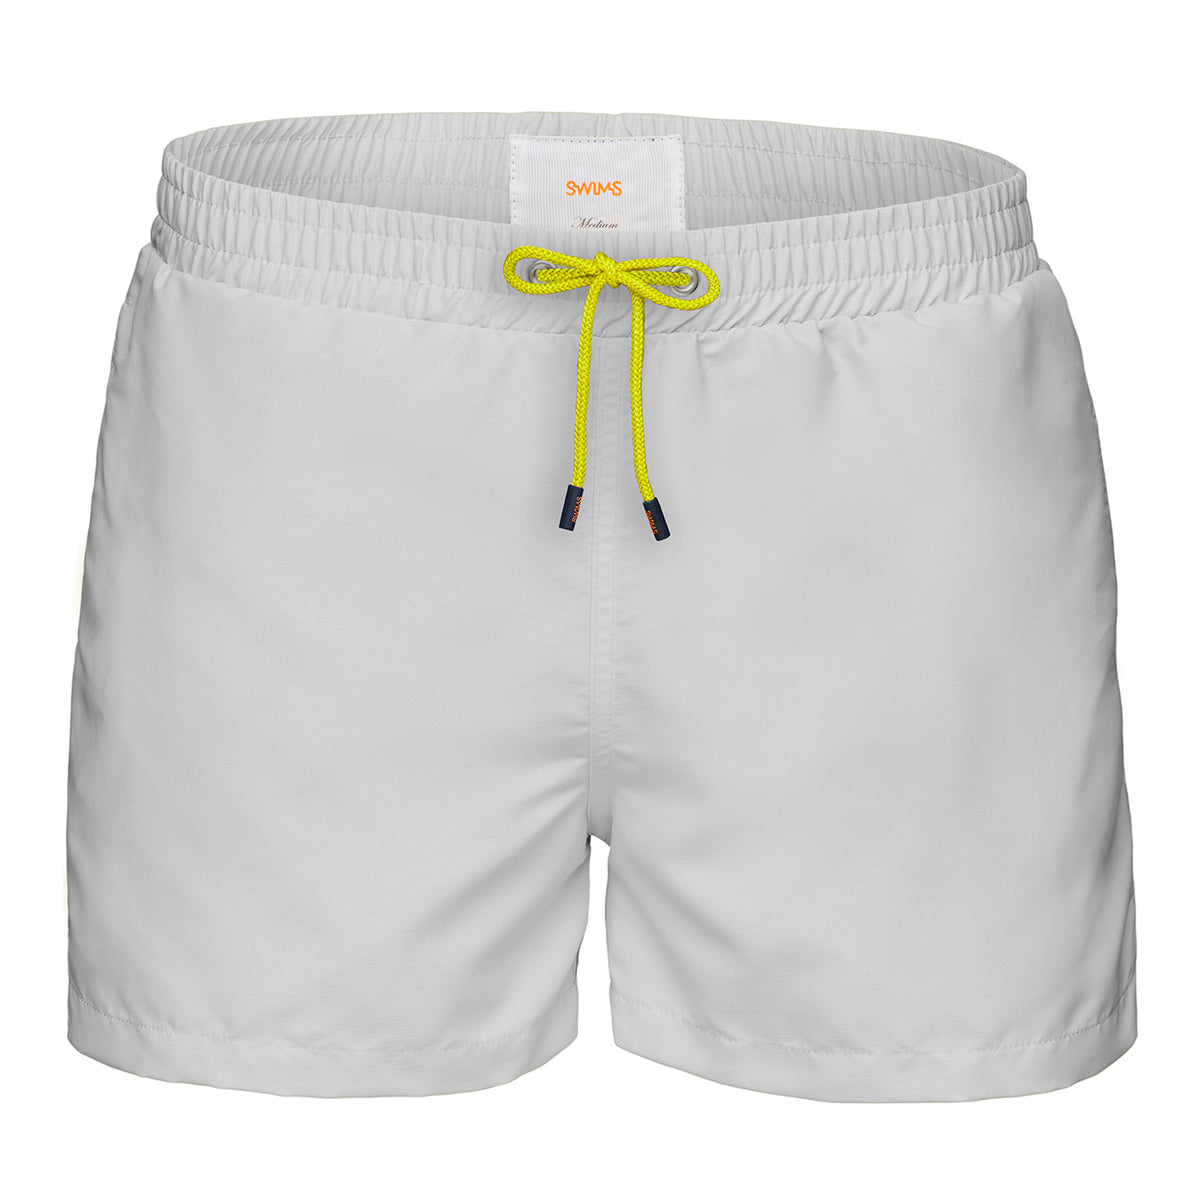 Breeze Swimshort - background::white,variant::Alloy